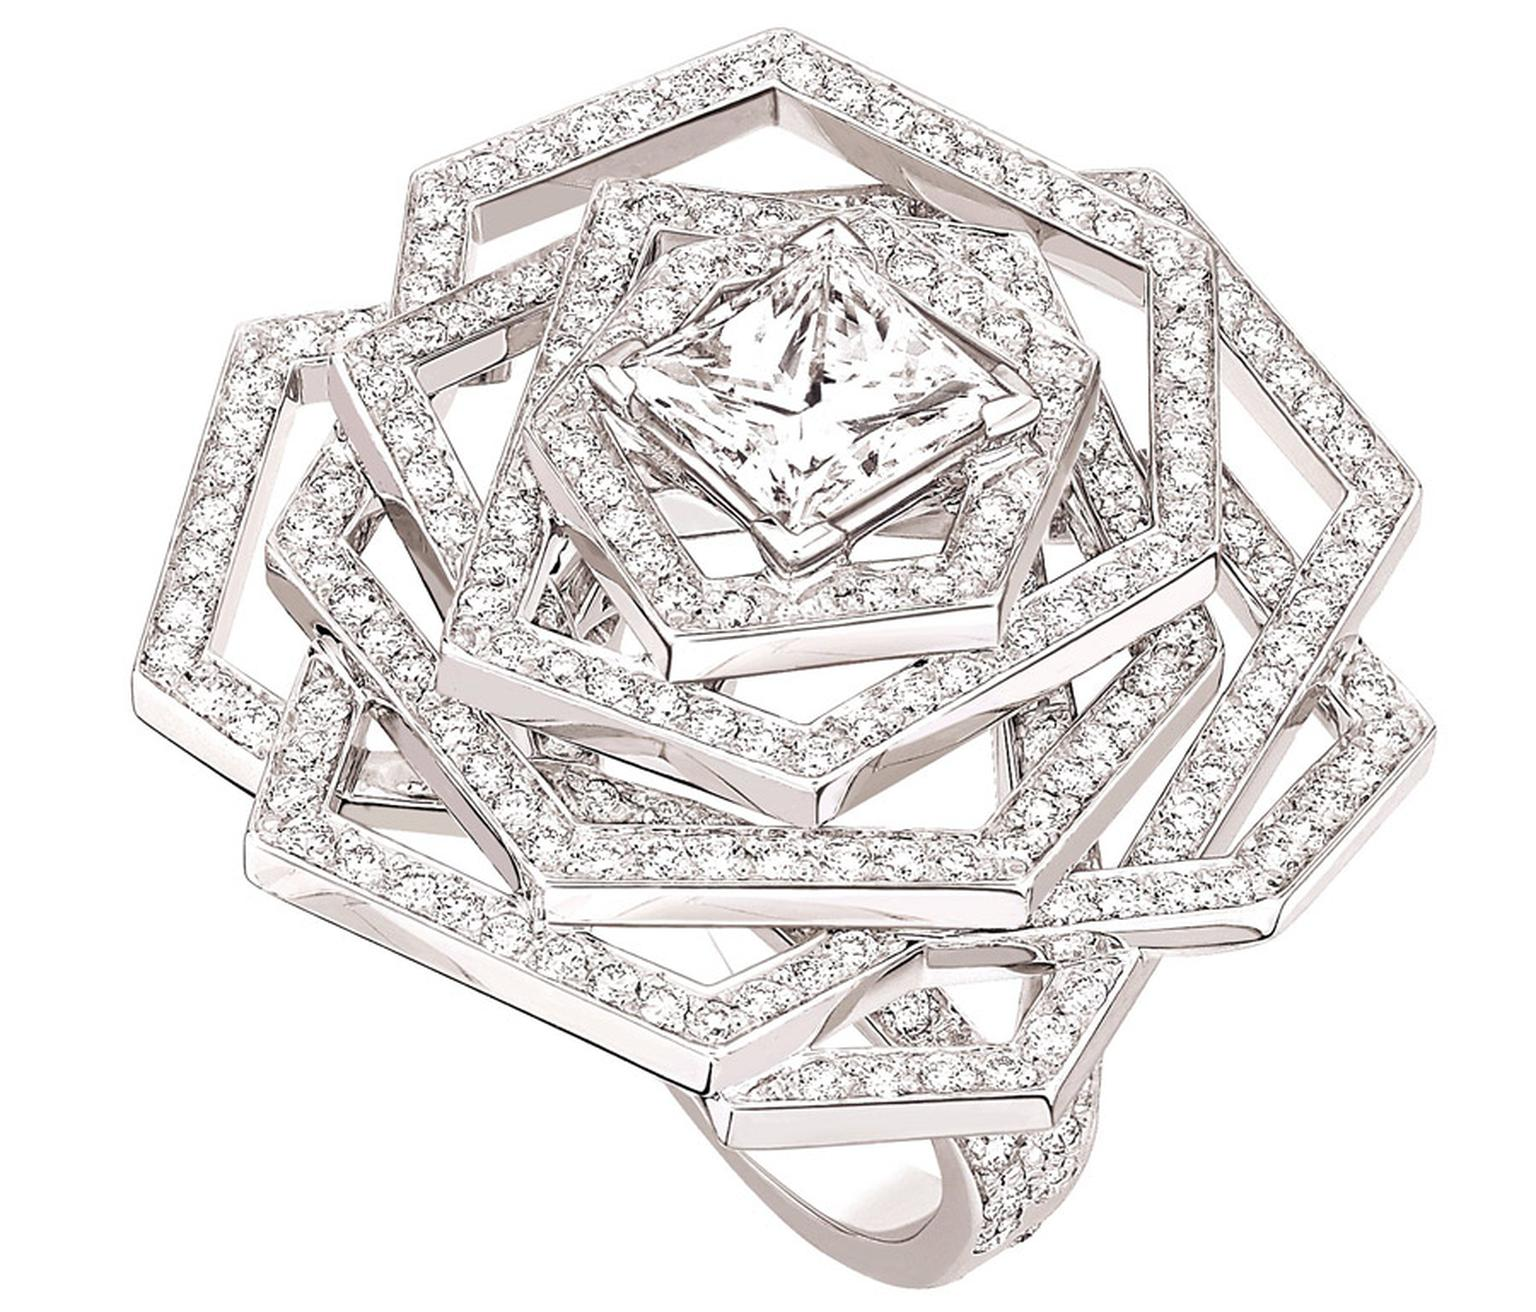 Chanel-Bague-1932-MM-J3941